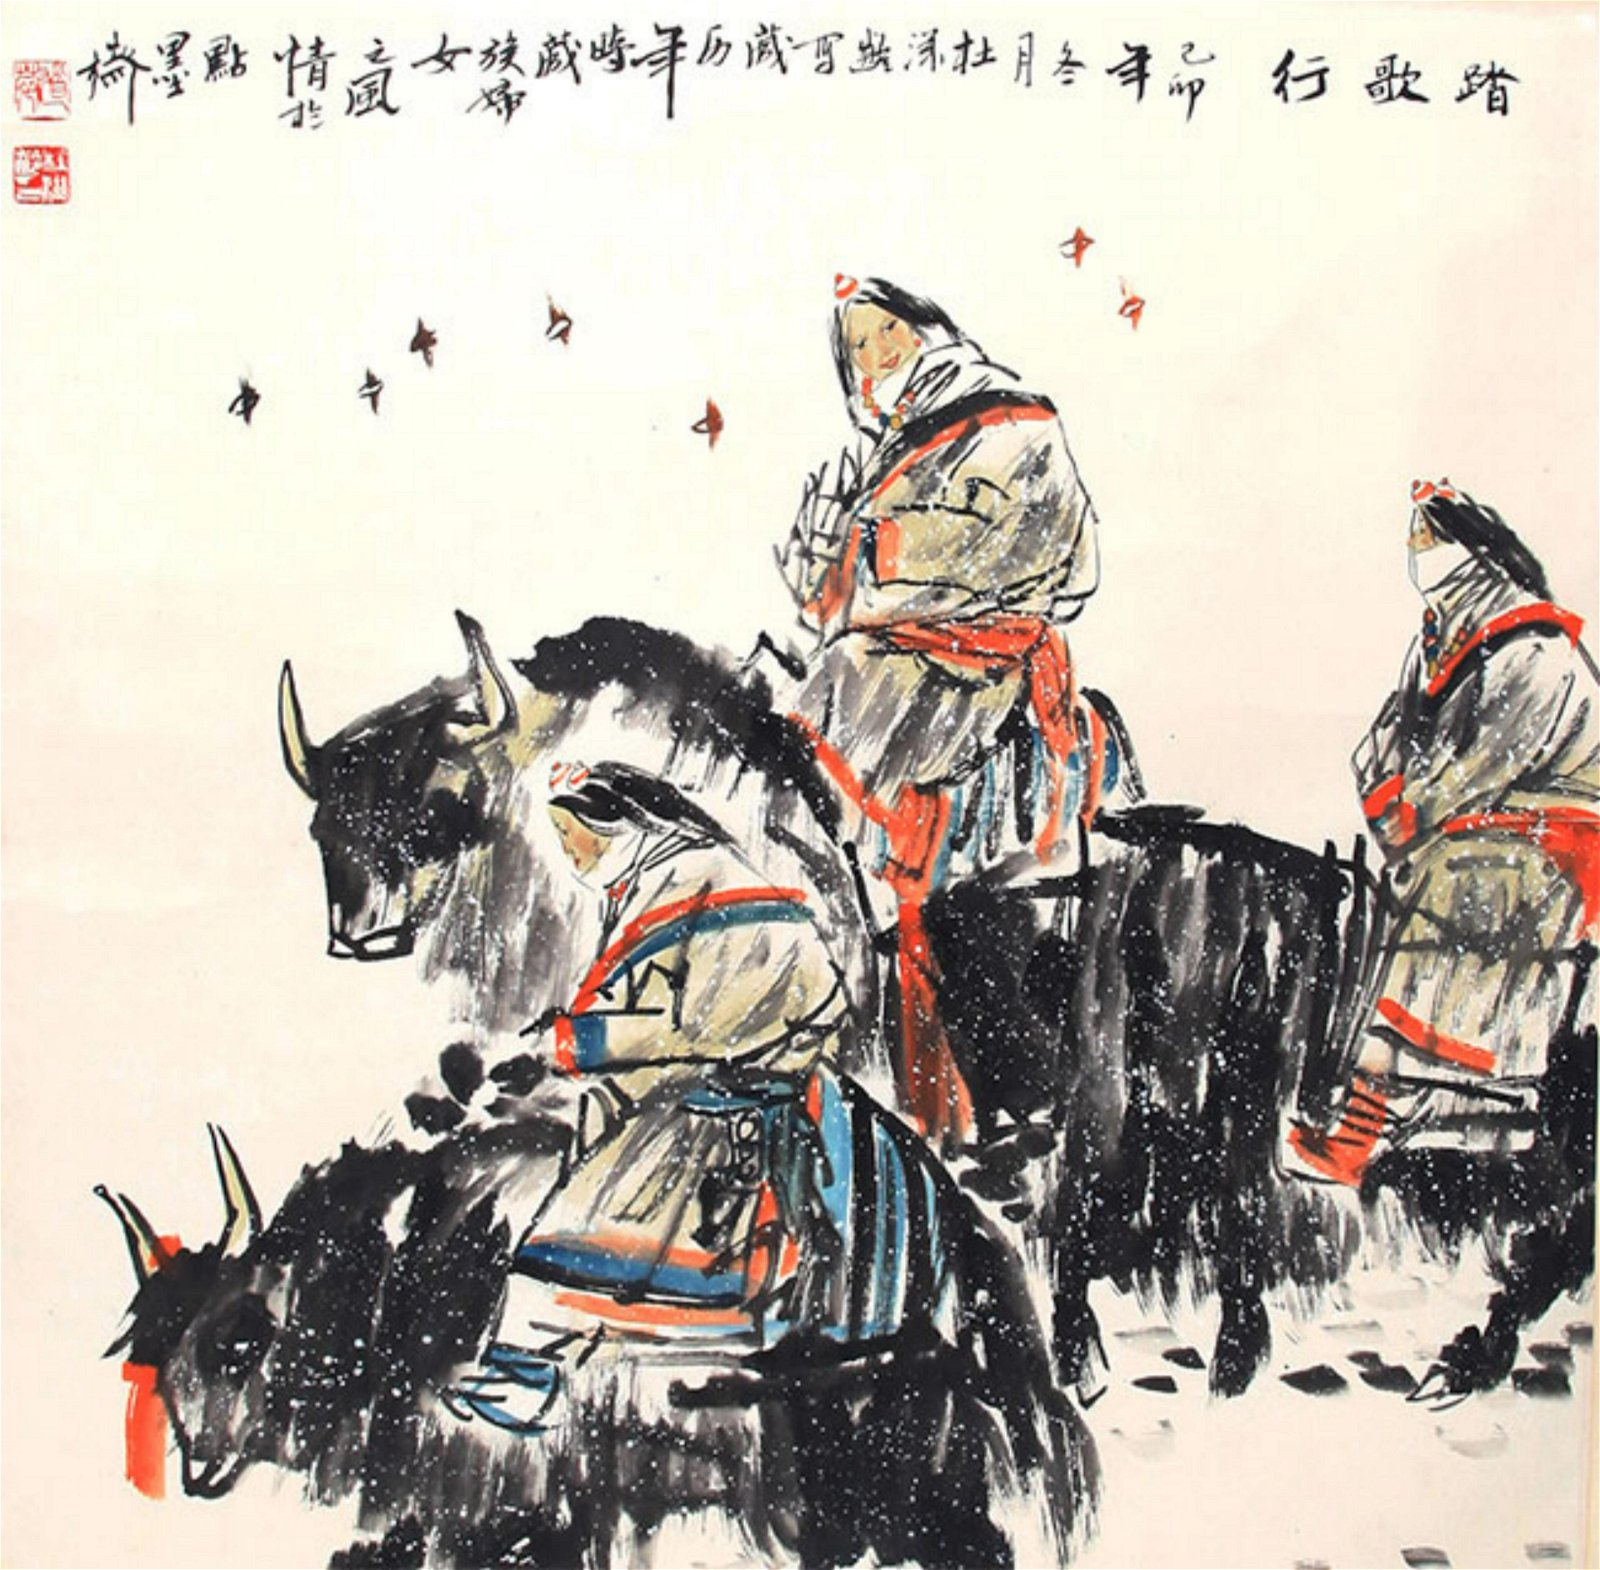 DU ZU LING CHINESE PAINTING, ATTRIBUTED TO